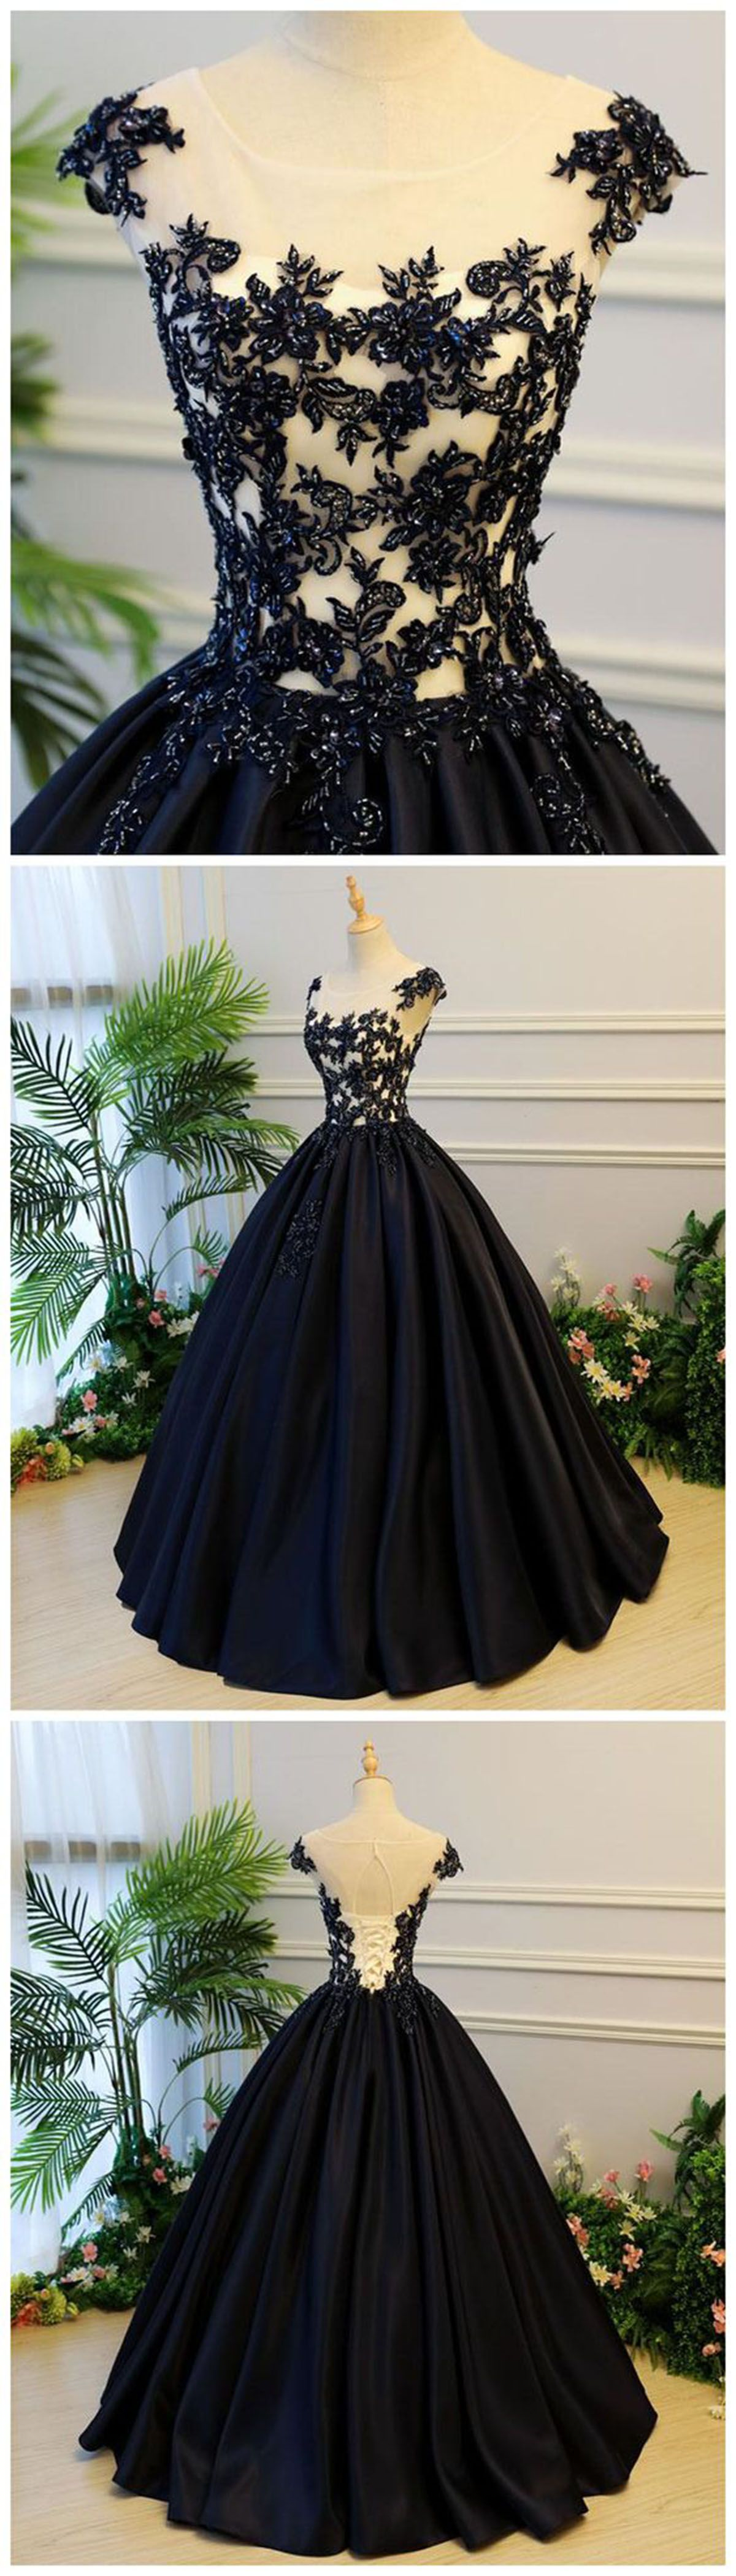 Black satin cap sleeves long evening dress long black lace ball